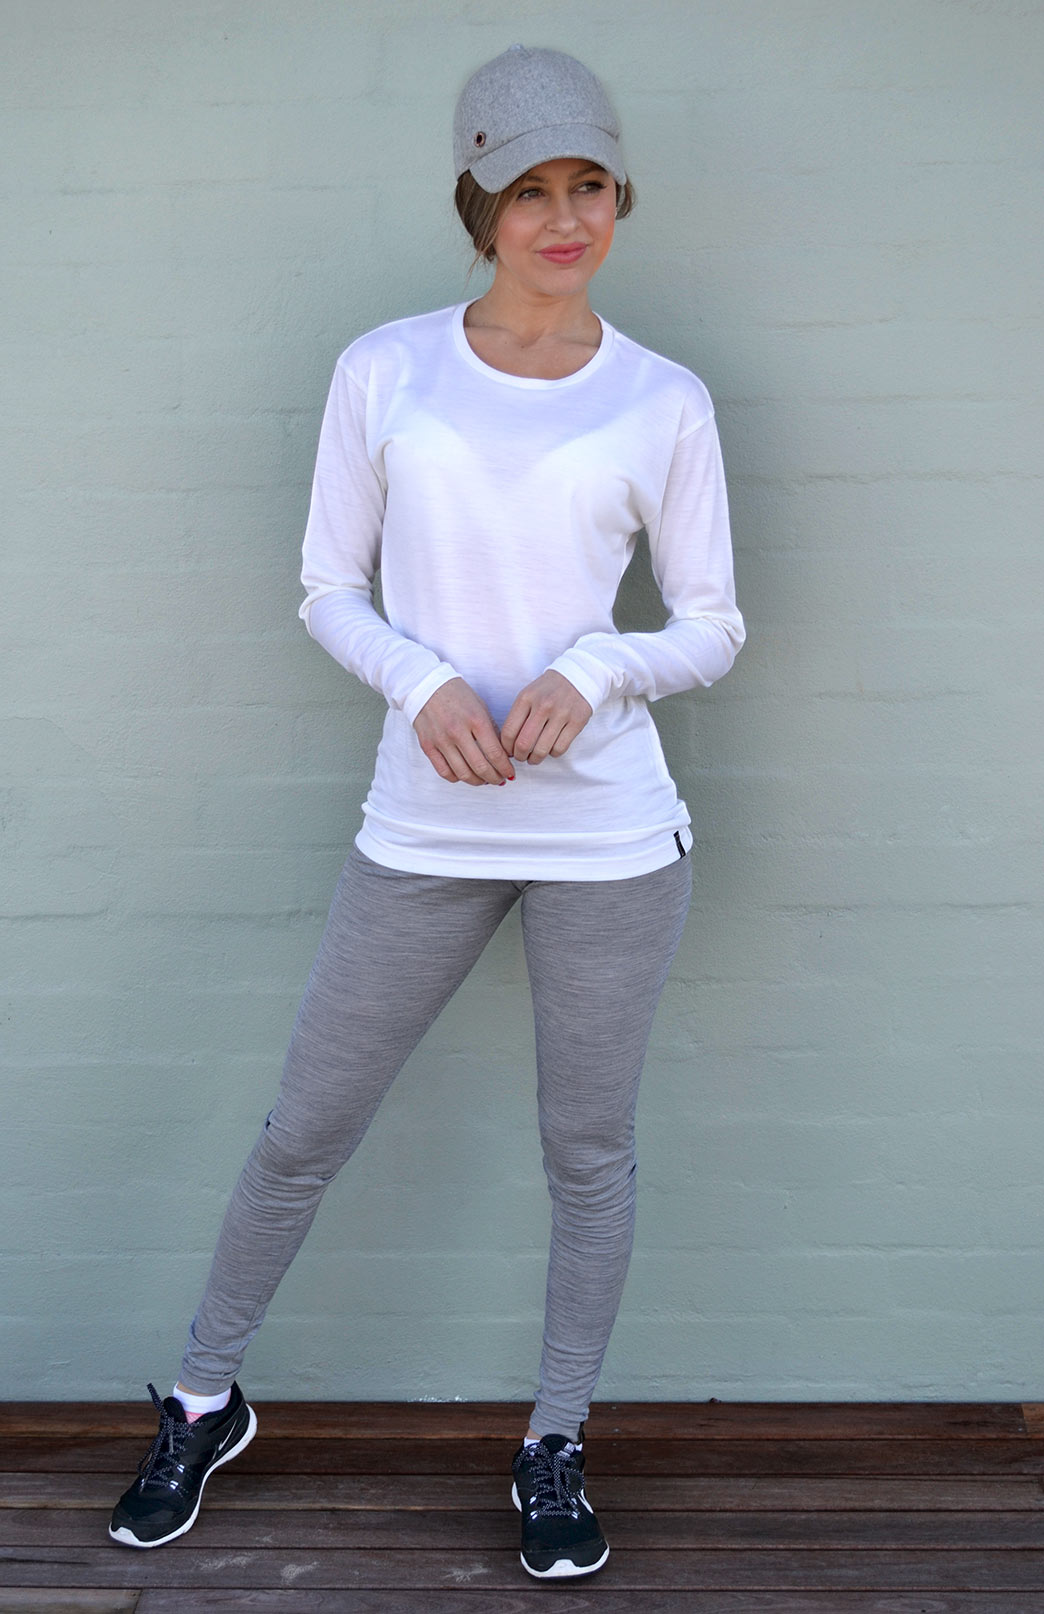 Long Sleeved Crew Neck Top - Lightweight (170g) - Women's Long Sleeved Ivory Pull Over Style Wool Thermal Top - Smitten Merino Tasmania Australia